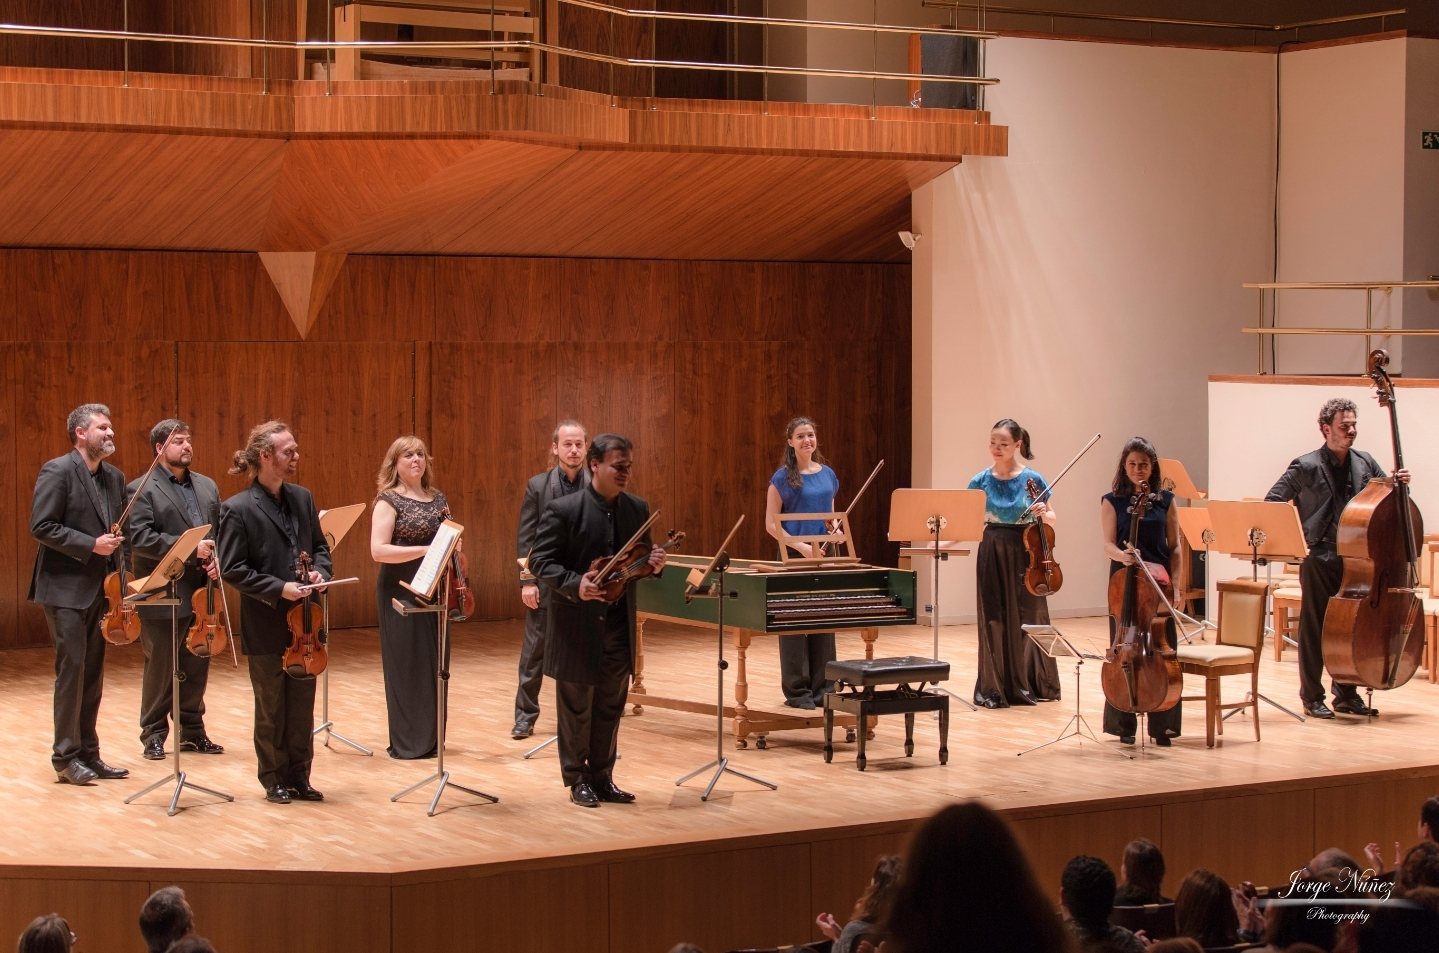 Madrid Soloists Chamber Orchestra together